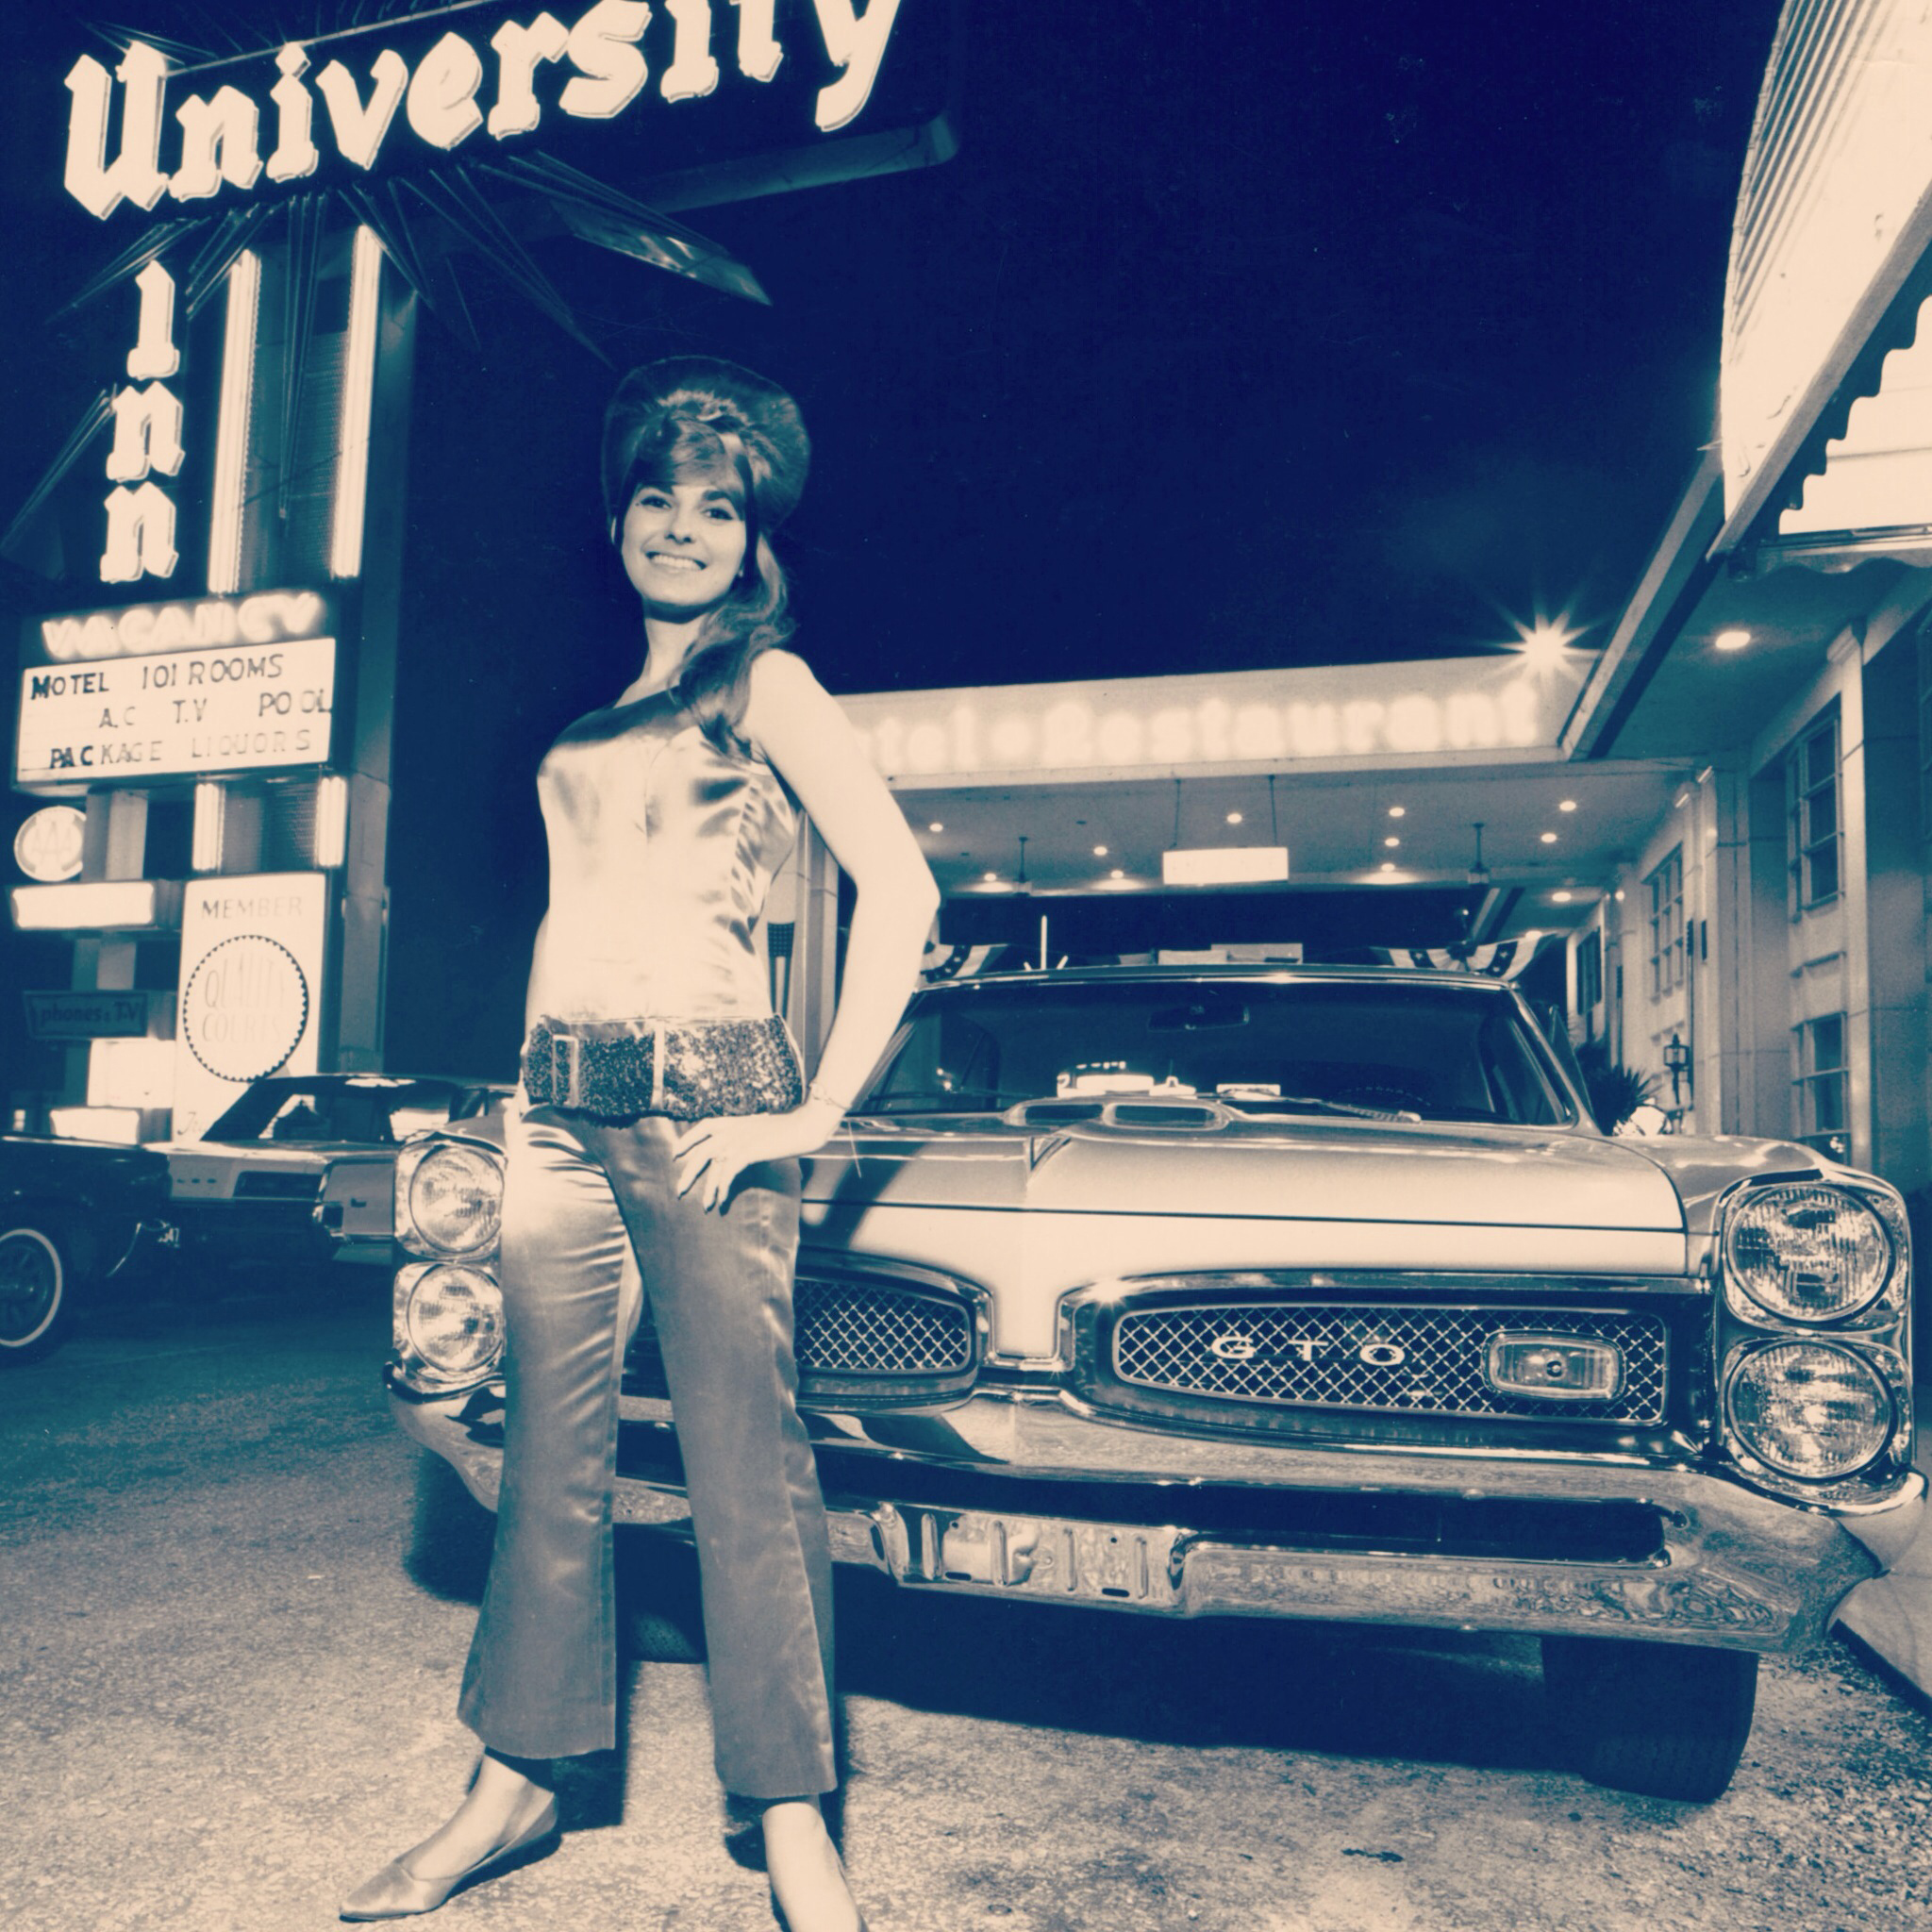 Linda Lyndell at the University Inn in Gainesville, Florida, circa 1968. Image courtesy of the Stax Museum.